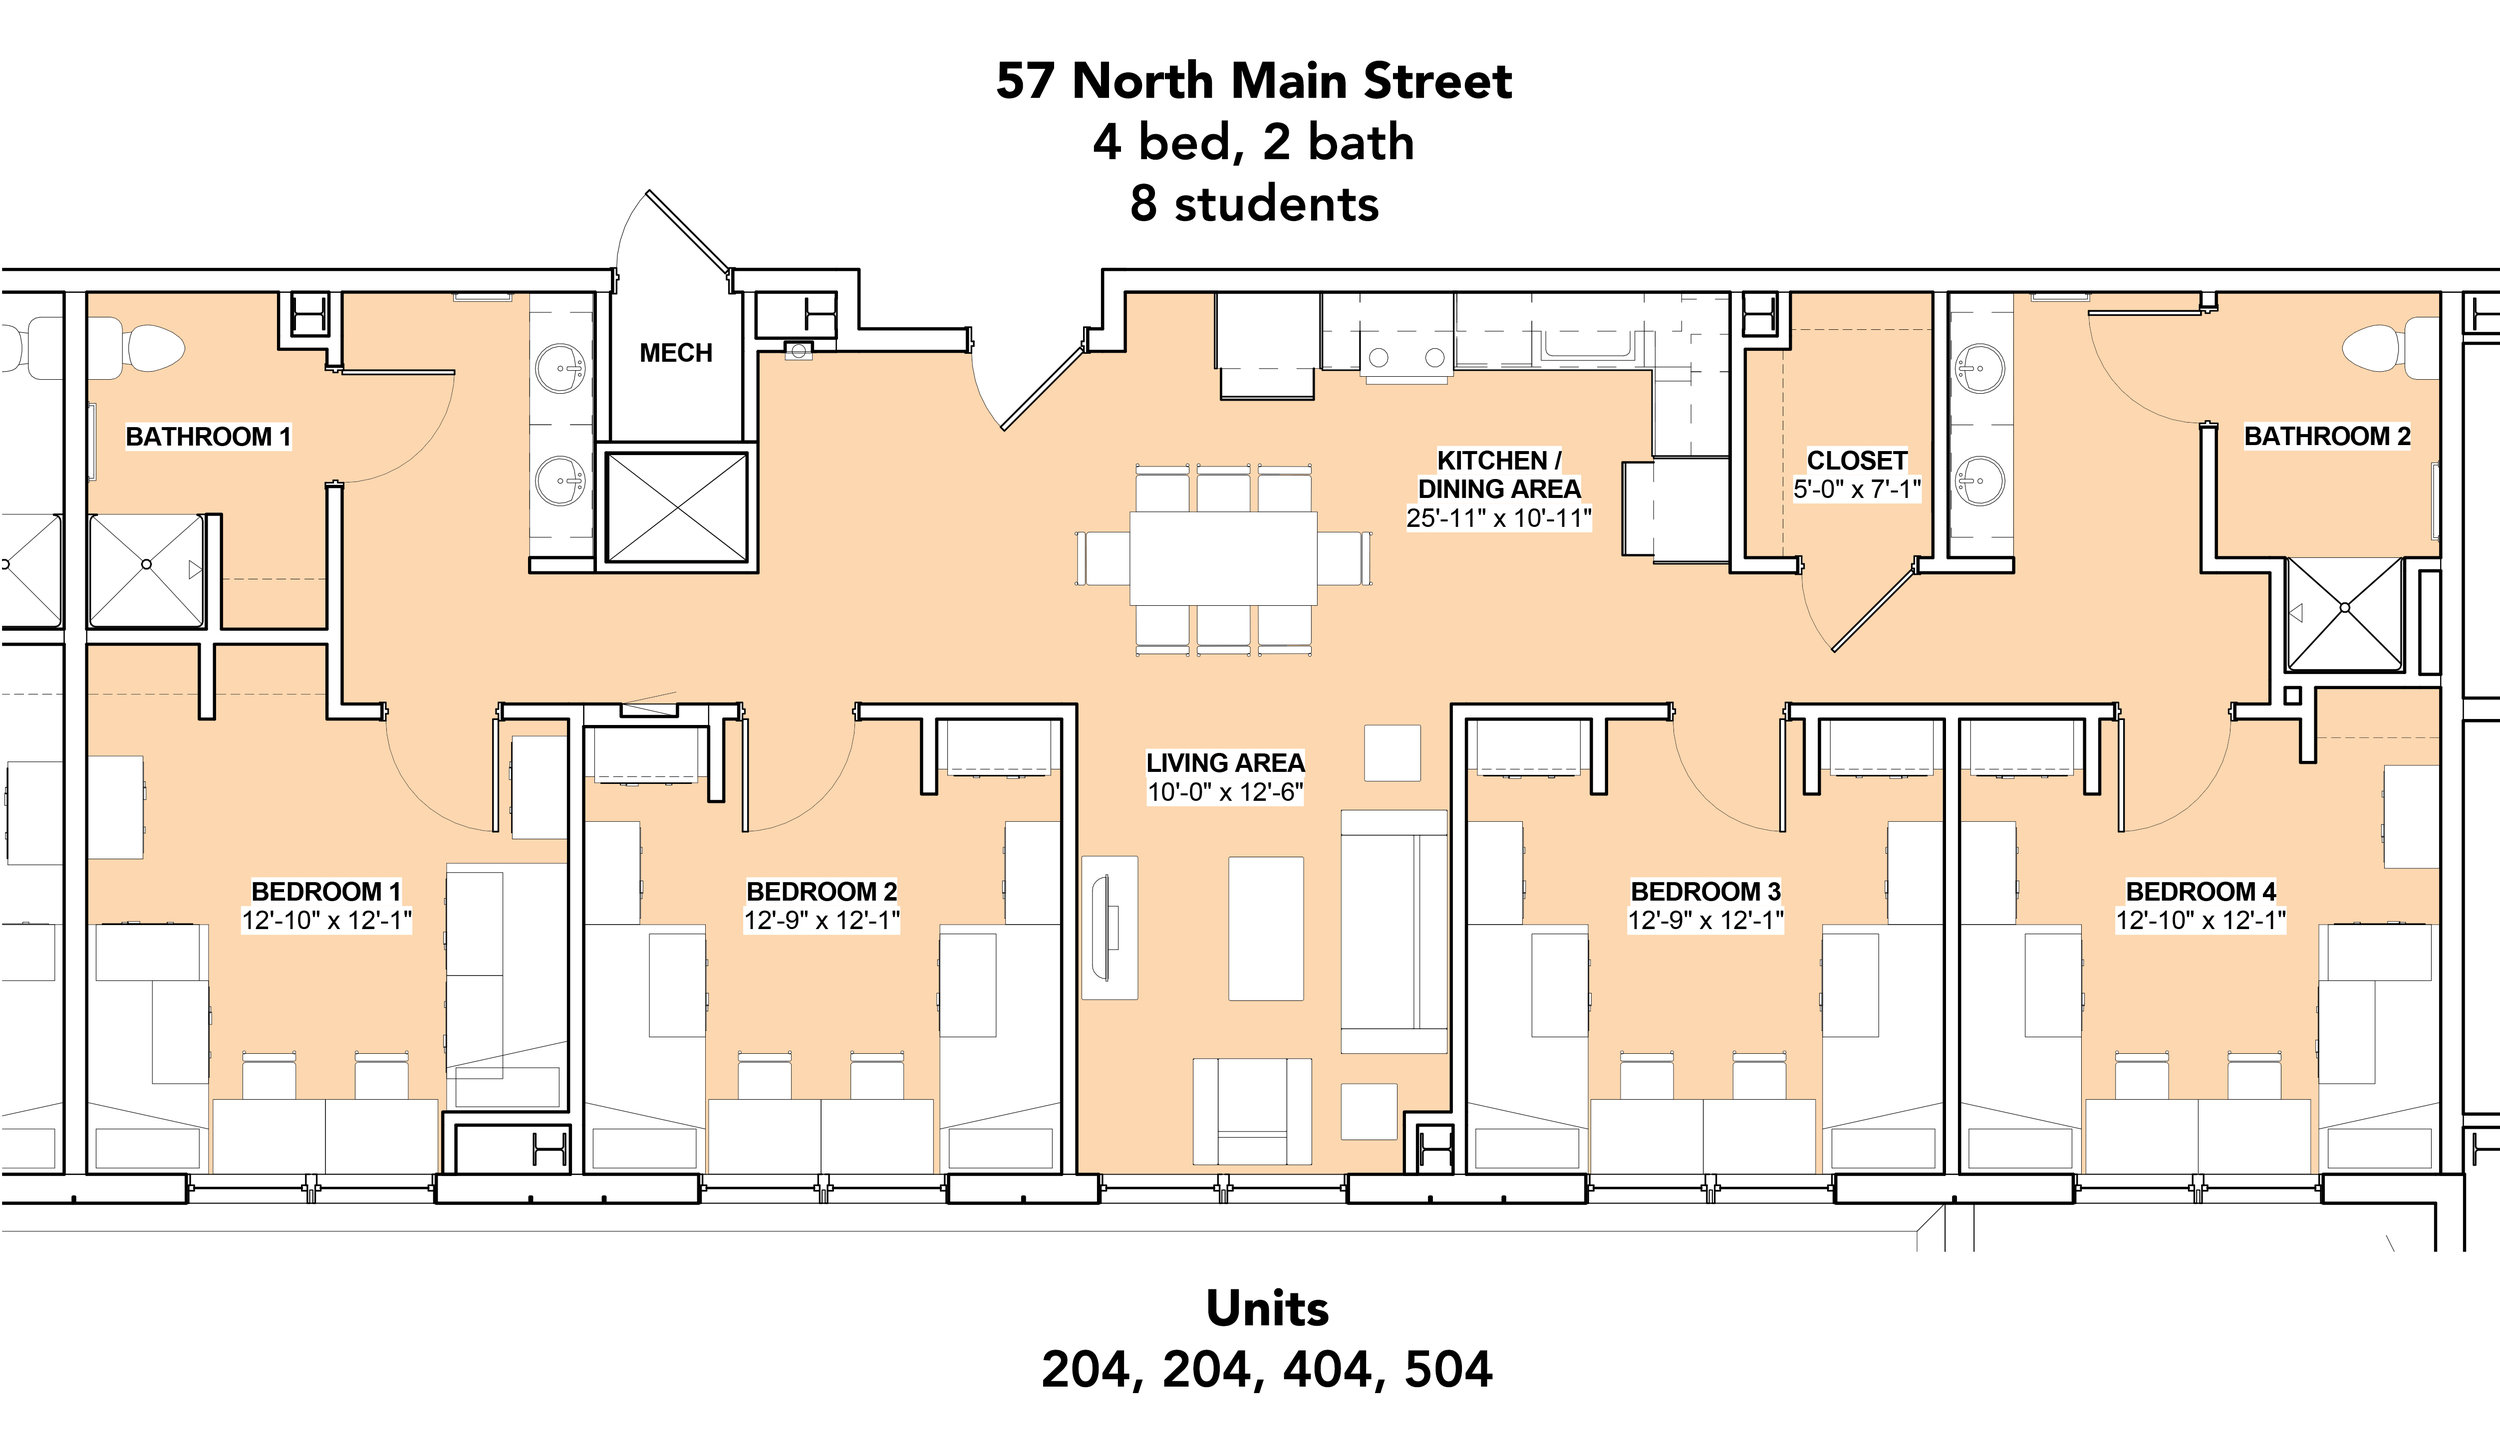 57 North Main 8 stud_2.jpg